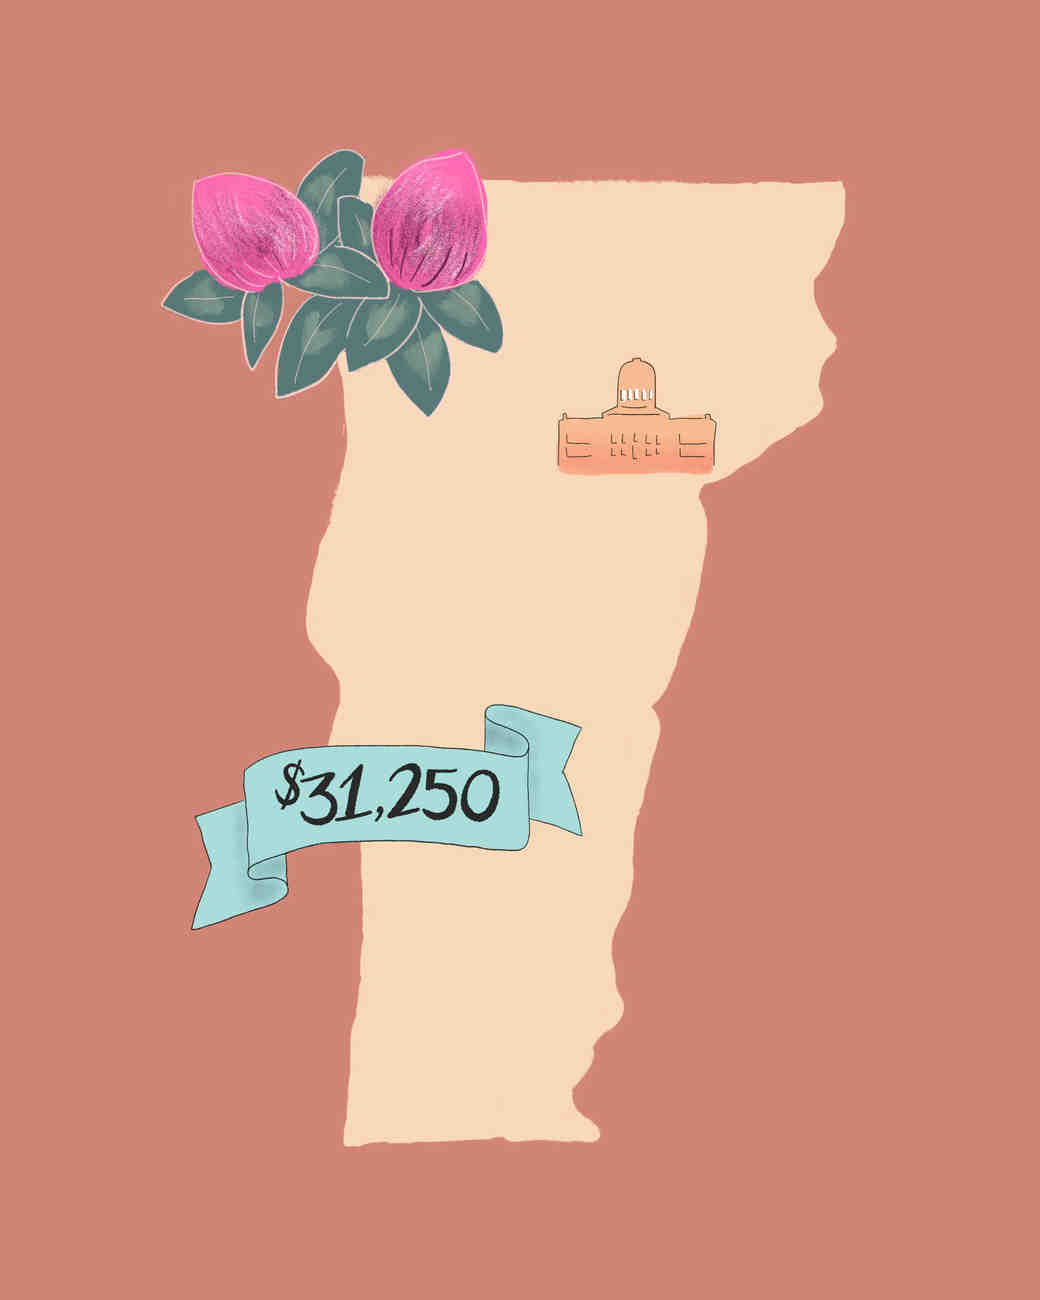 state wedding costs illustration vermont